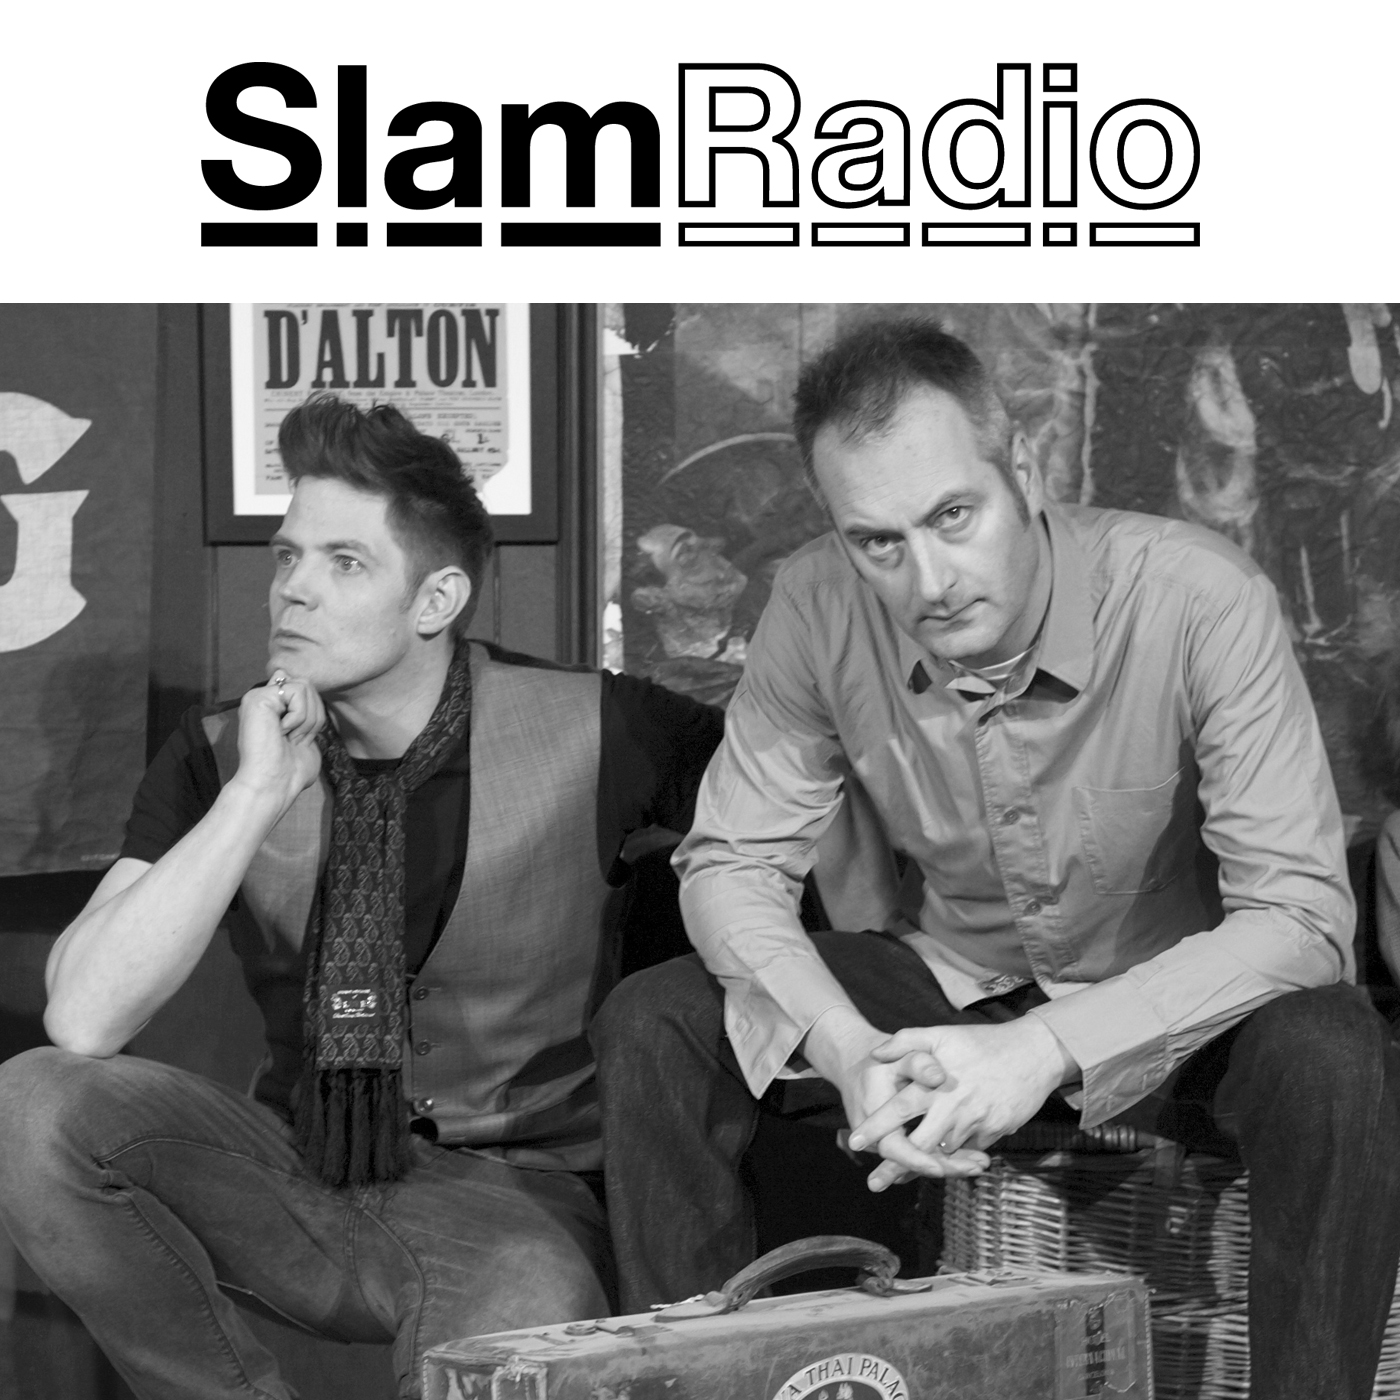 Delta Podcasts - Slam Radio by Soma Records (30.05.2018)